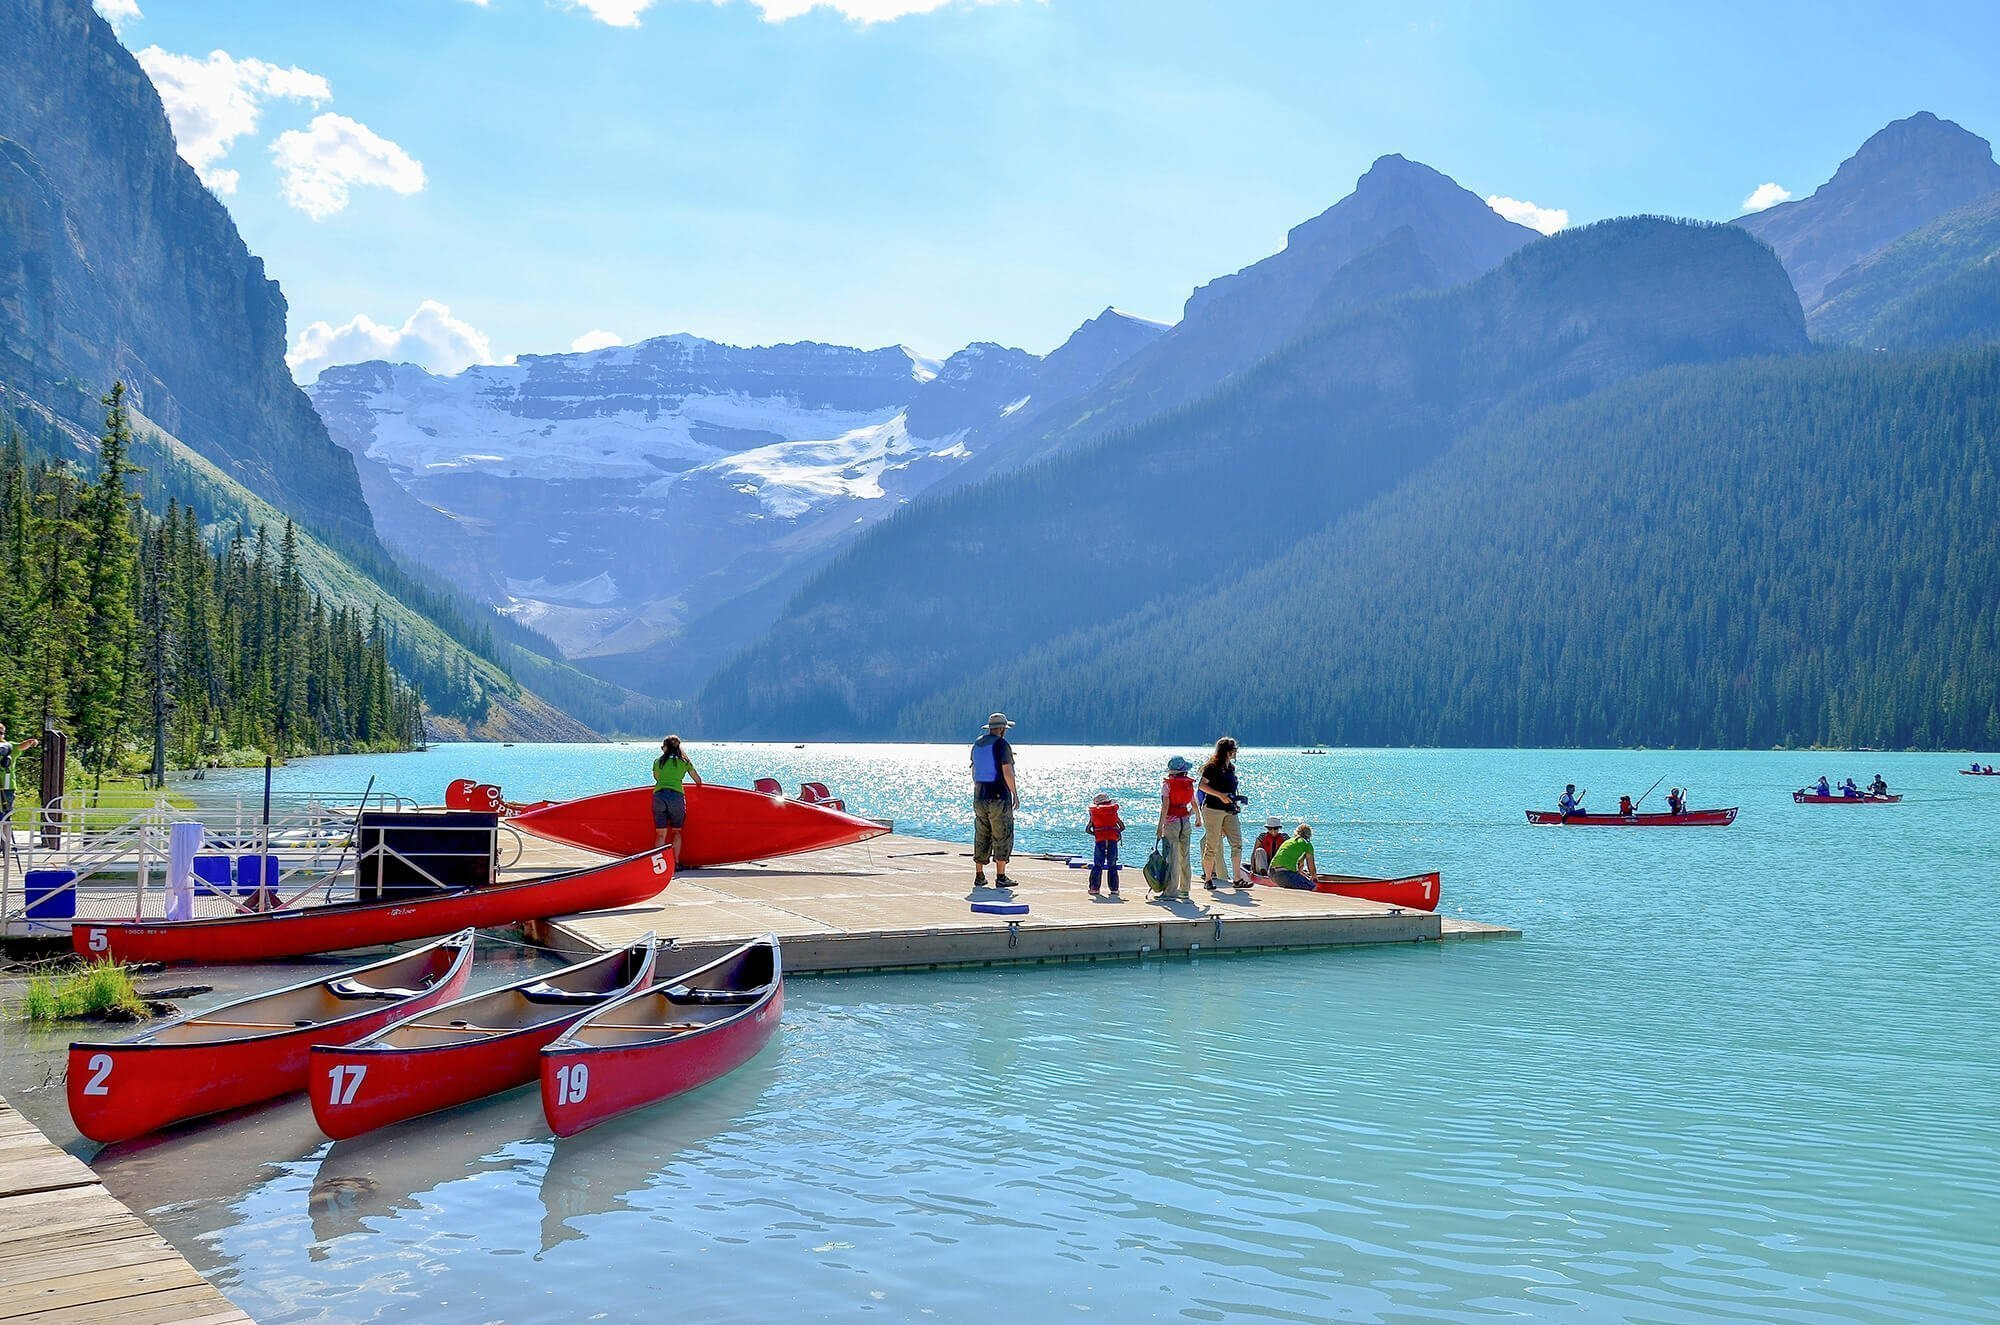 West-Canada Lake Louise in Alberta